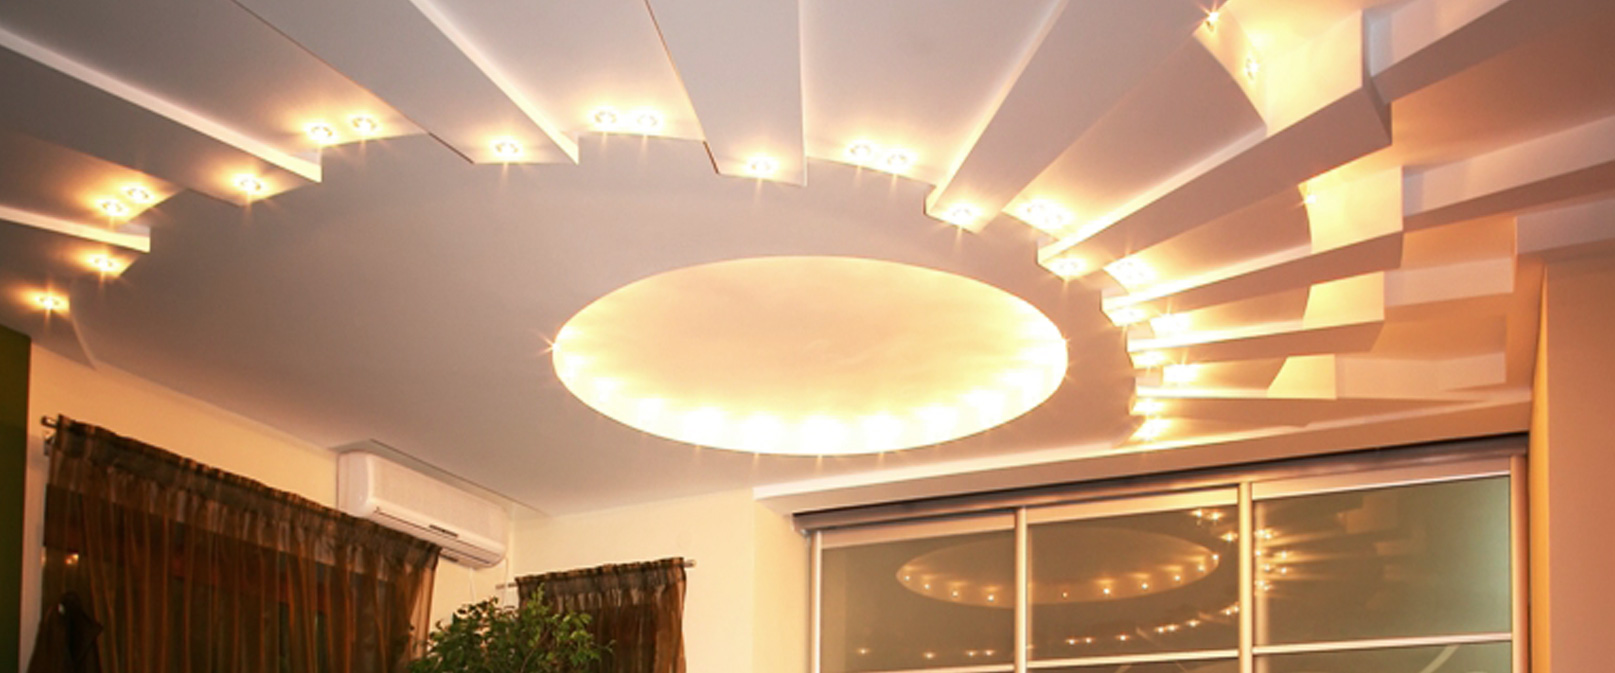 Lighting up the ceiling saint gobain gyproc india lighting up the ceiling arubaitofo Image collections